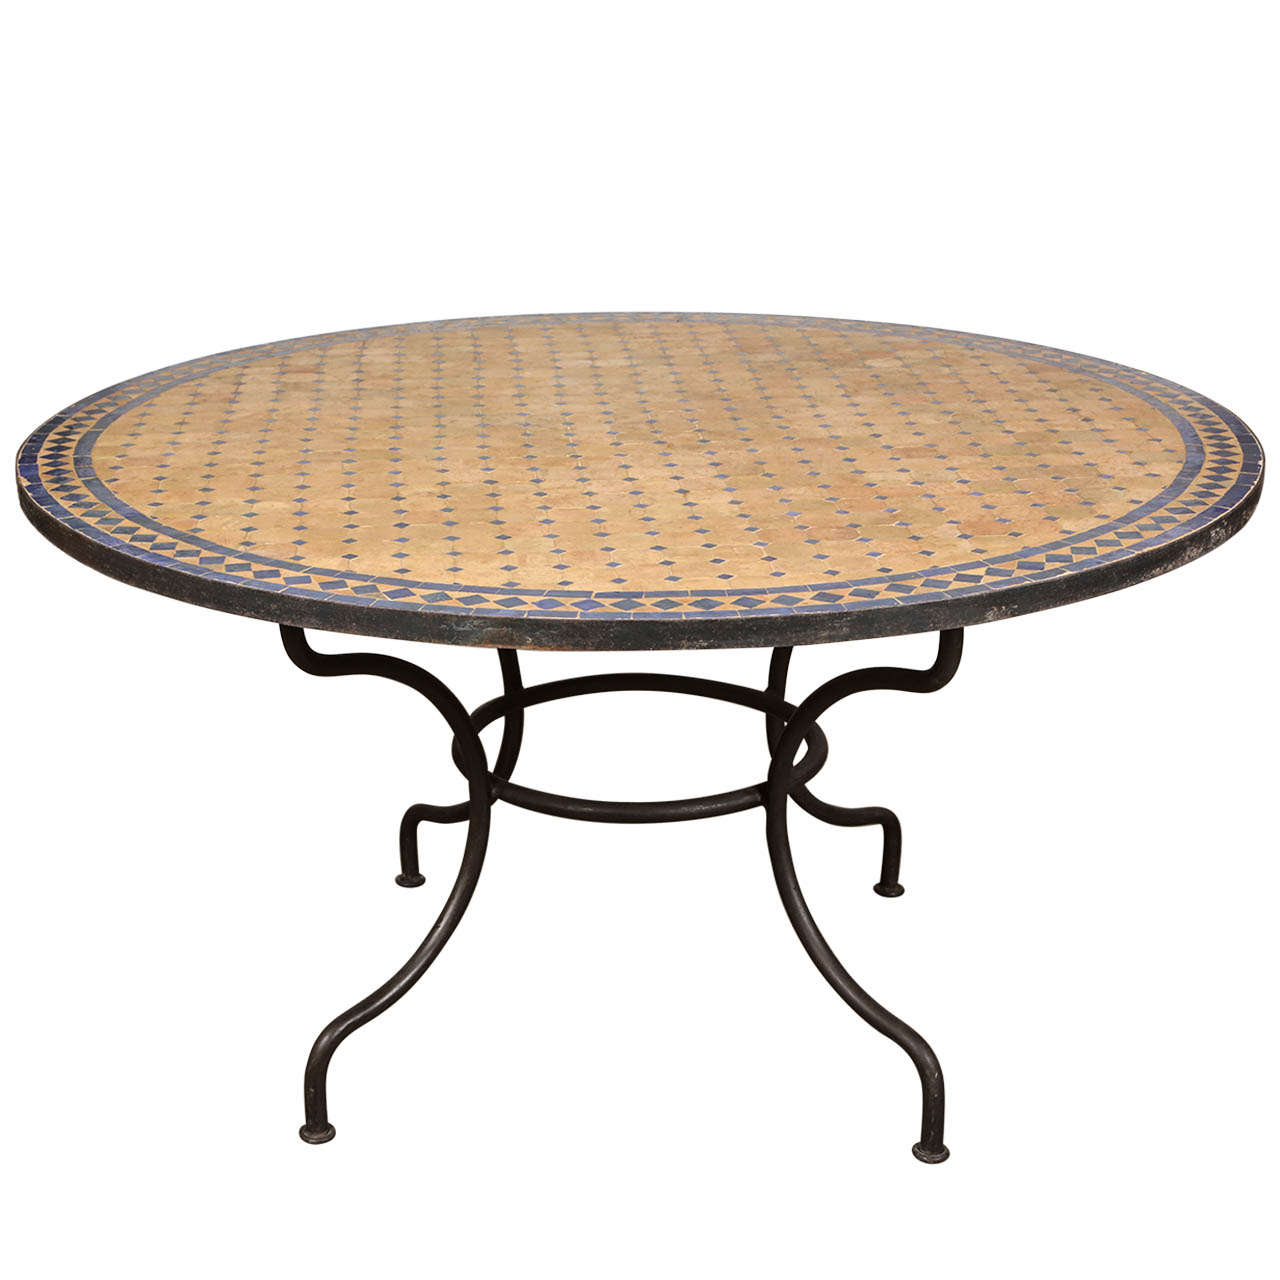 mosaic tile patio table and glass tables outdoor stone accent home goods chairs steel hairpin legs drum throne parts washer dryer reclaimed wood coffee wrought iron bistro set